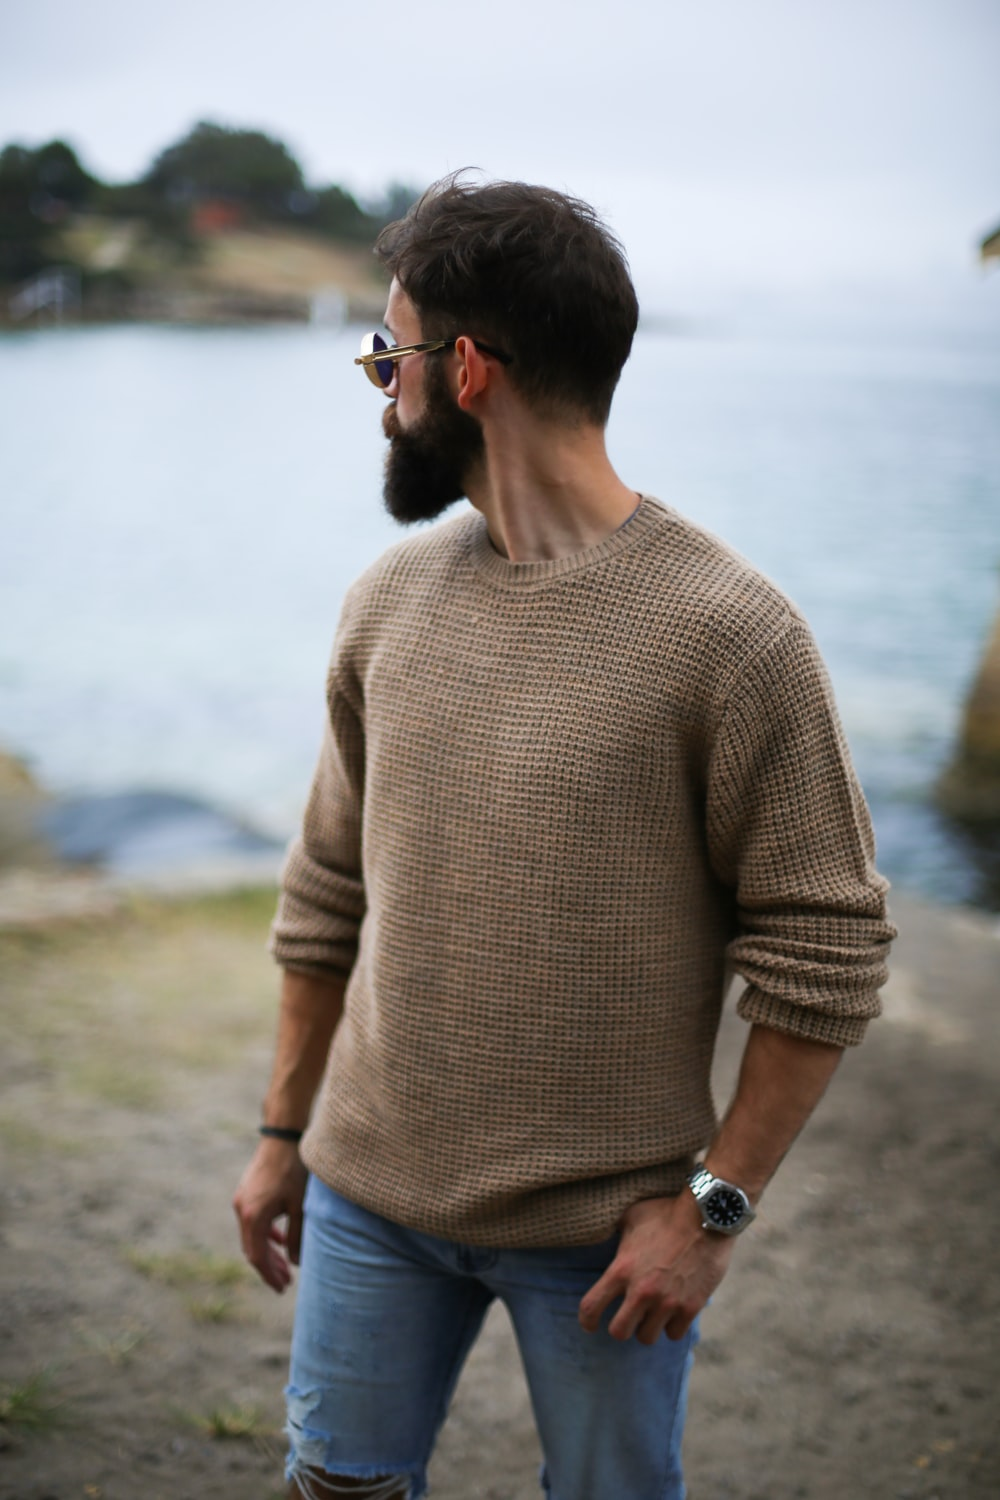 man in brown knitted sweater near beach